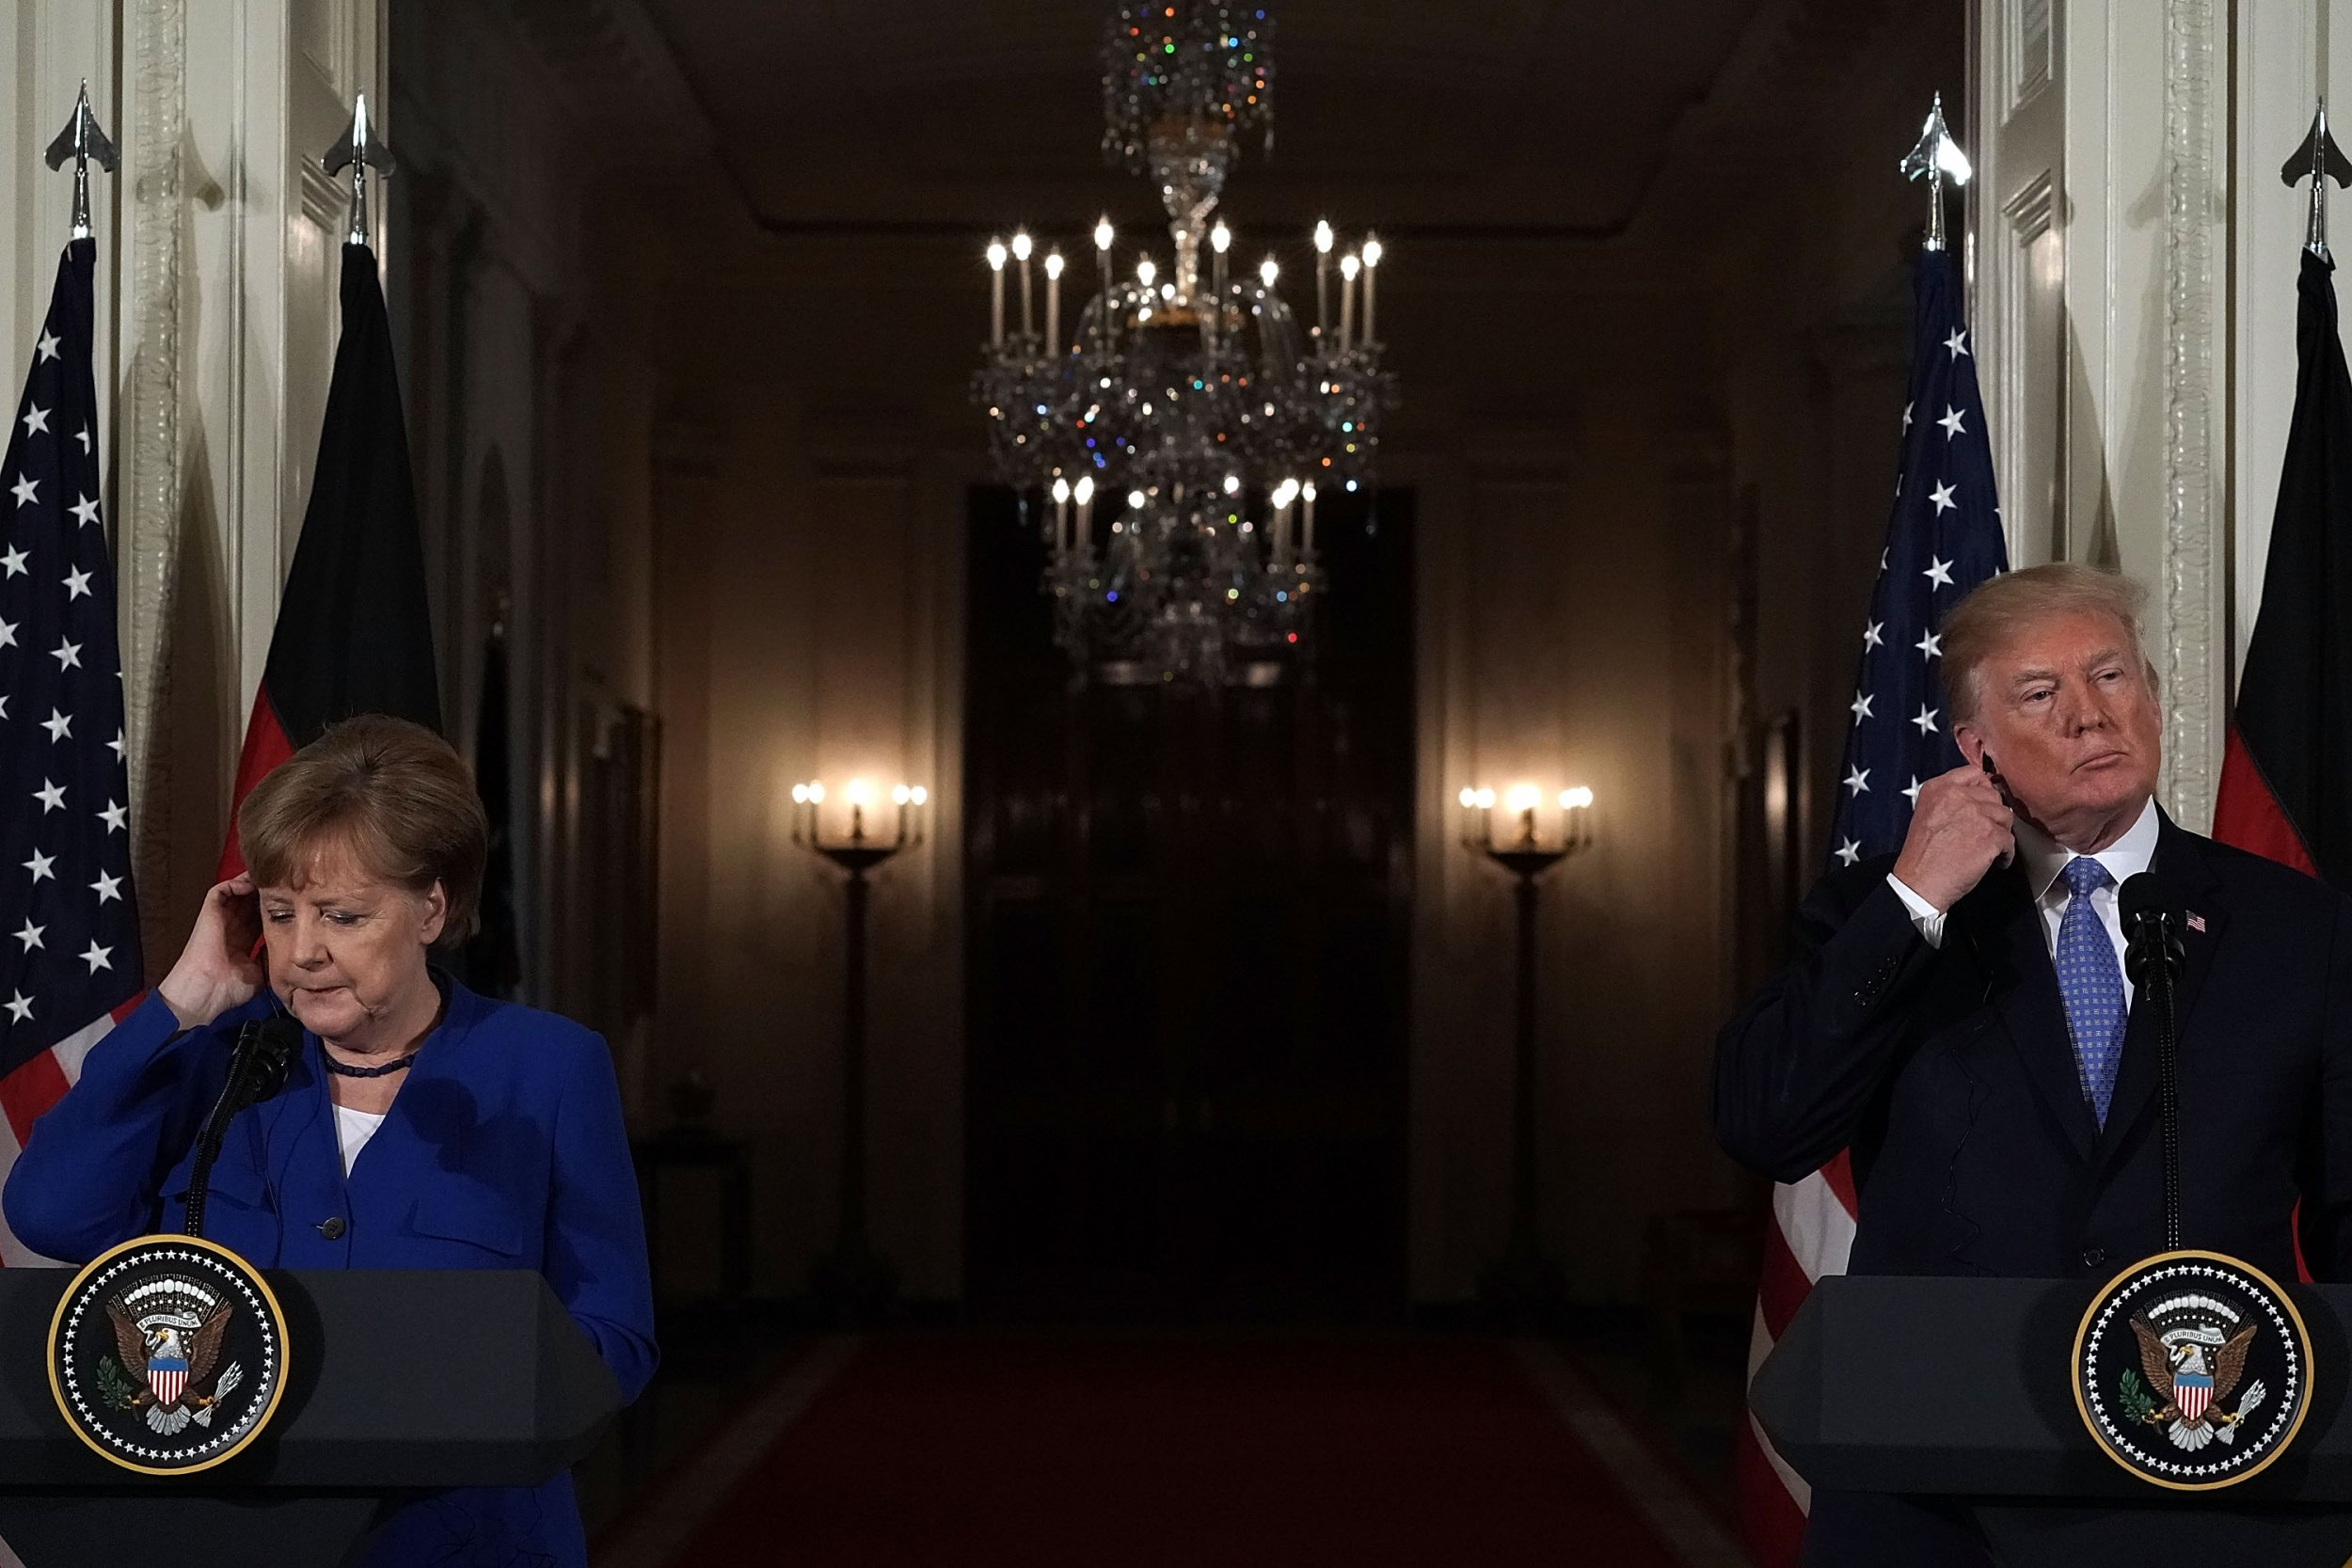 Angela Merkel and Donald Trump, April 2018